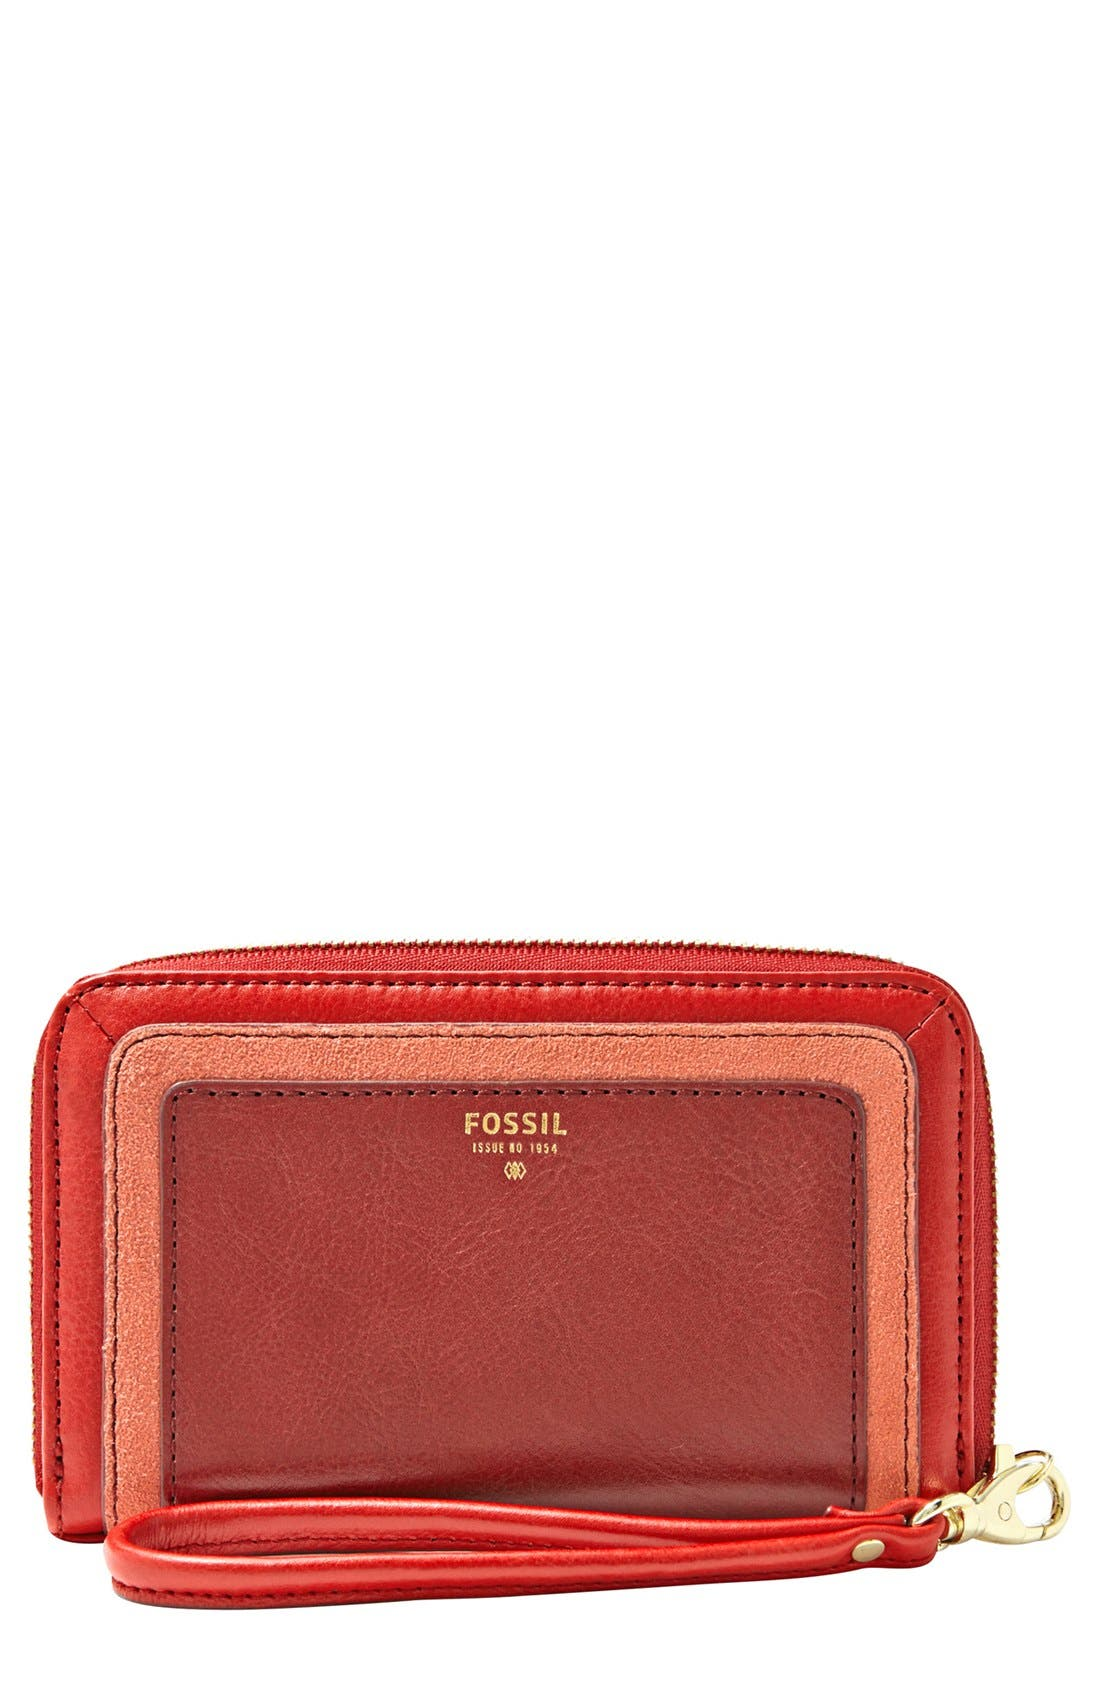 Main Image - Fossil 'Sydney' Zip Phone Wallet